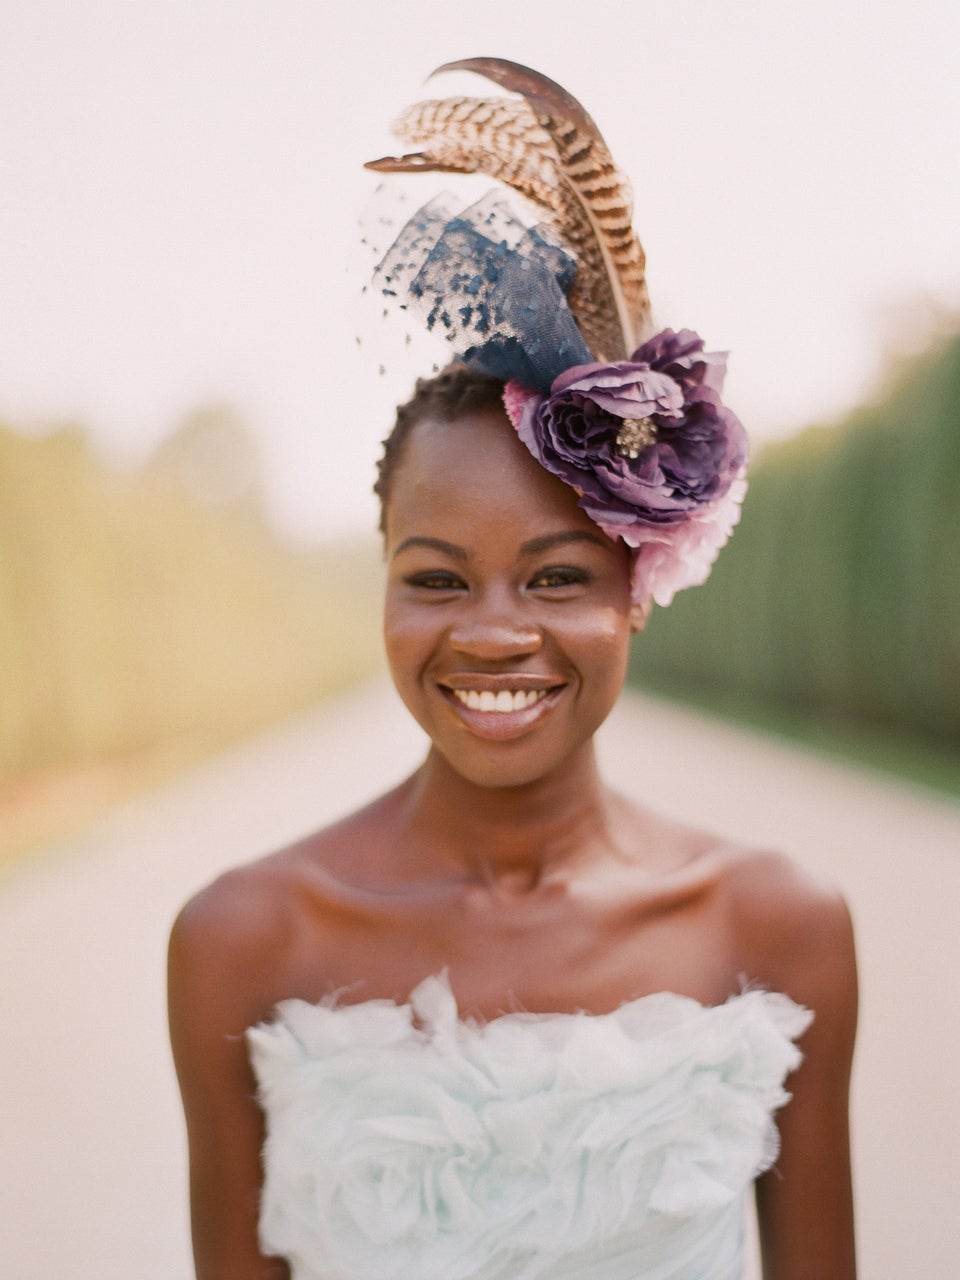 Wedding Trend of the Week: Go for the Drama